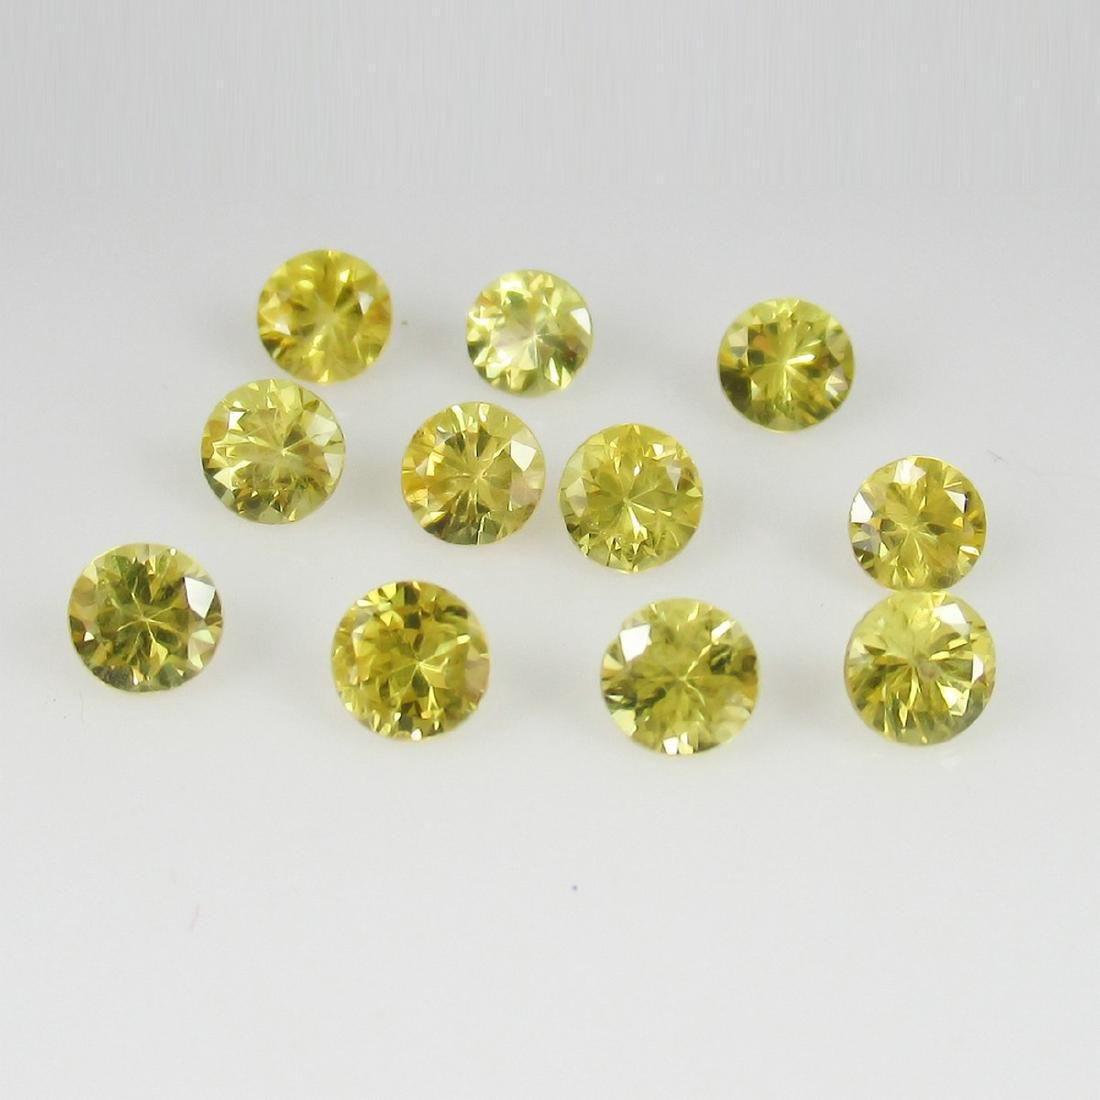 2.46 Carat 11 Loose Yellow Sapphires Necklace Set - 3